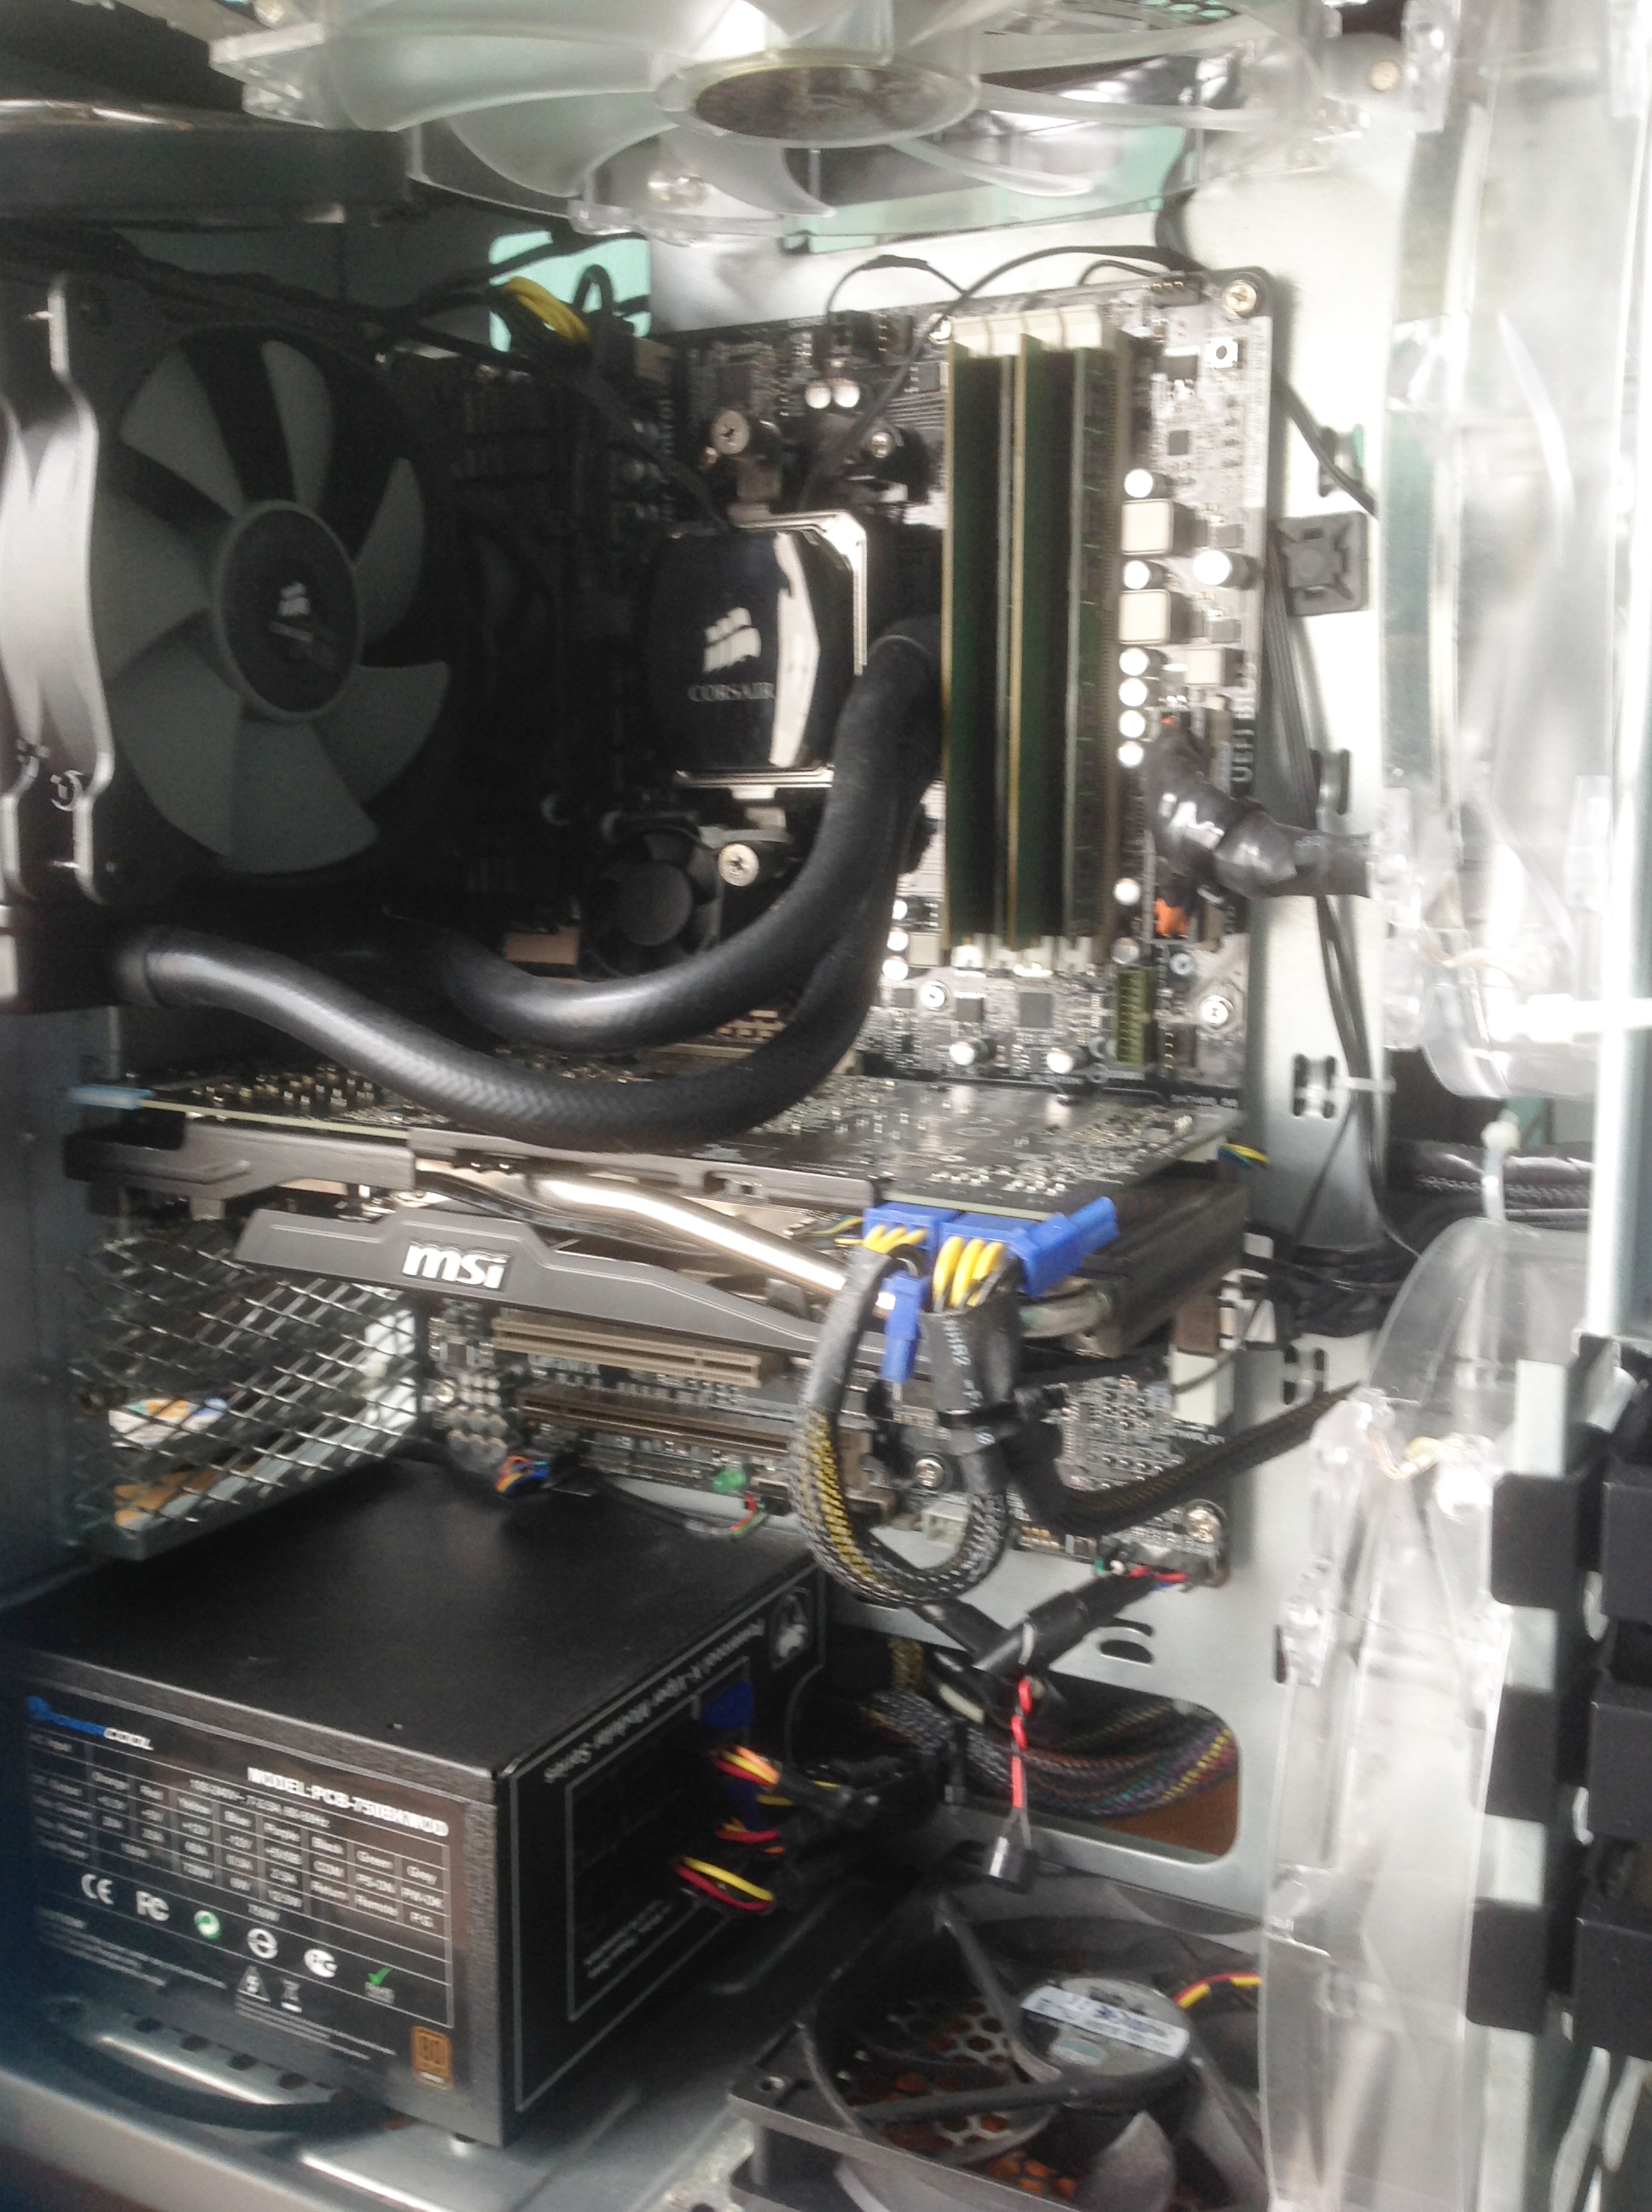 Saberkitty upgrade including MSI R9 270